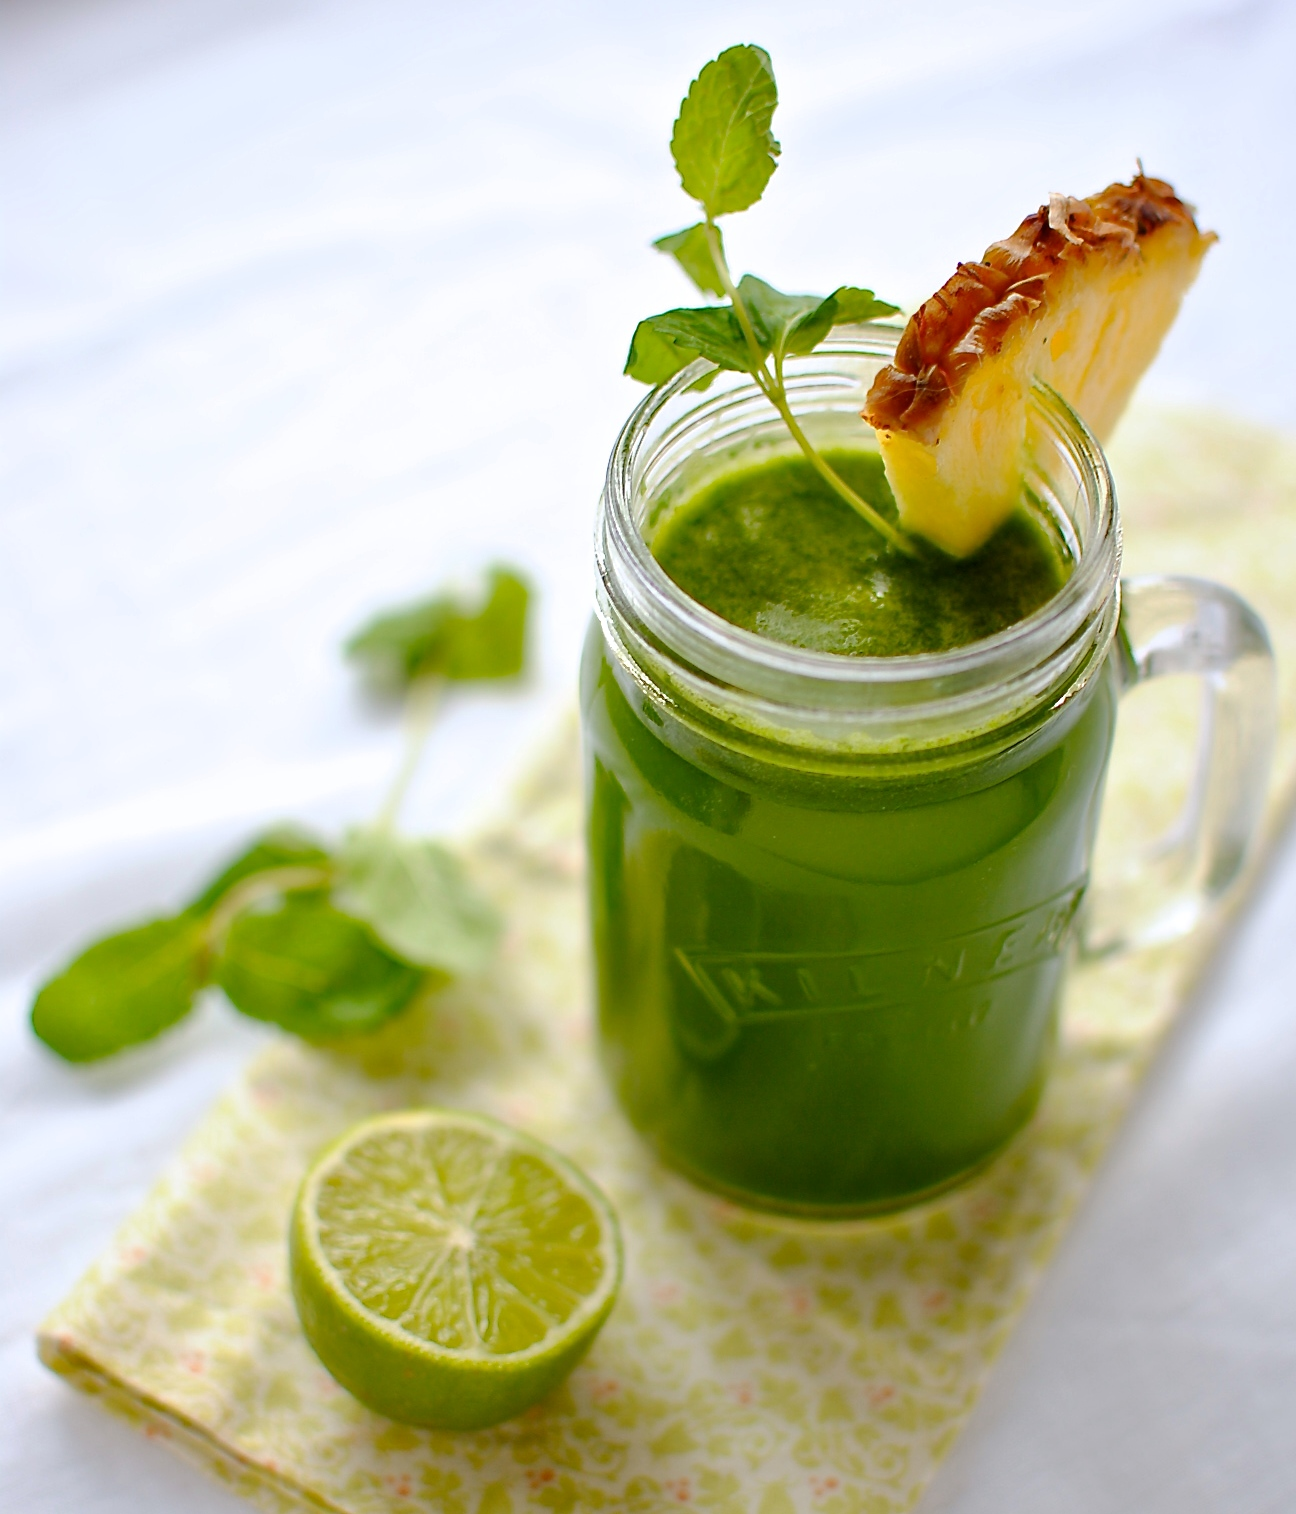 Slow Juicer Spinach : Froothie Optimum 600 Whole Fruit Slow Juicer Reviewed + 4 Easy Recipes food to glow